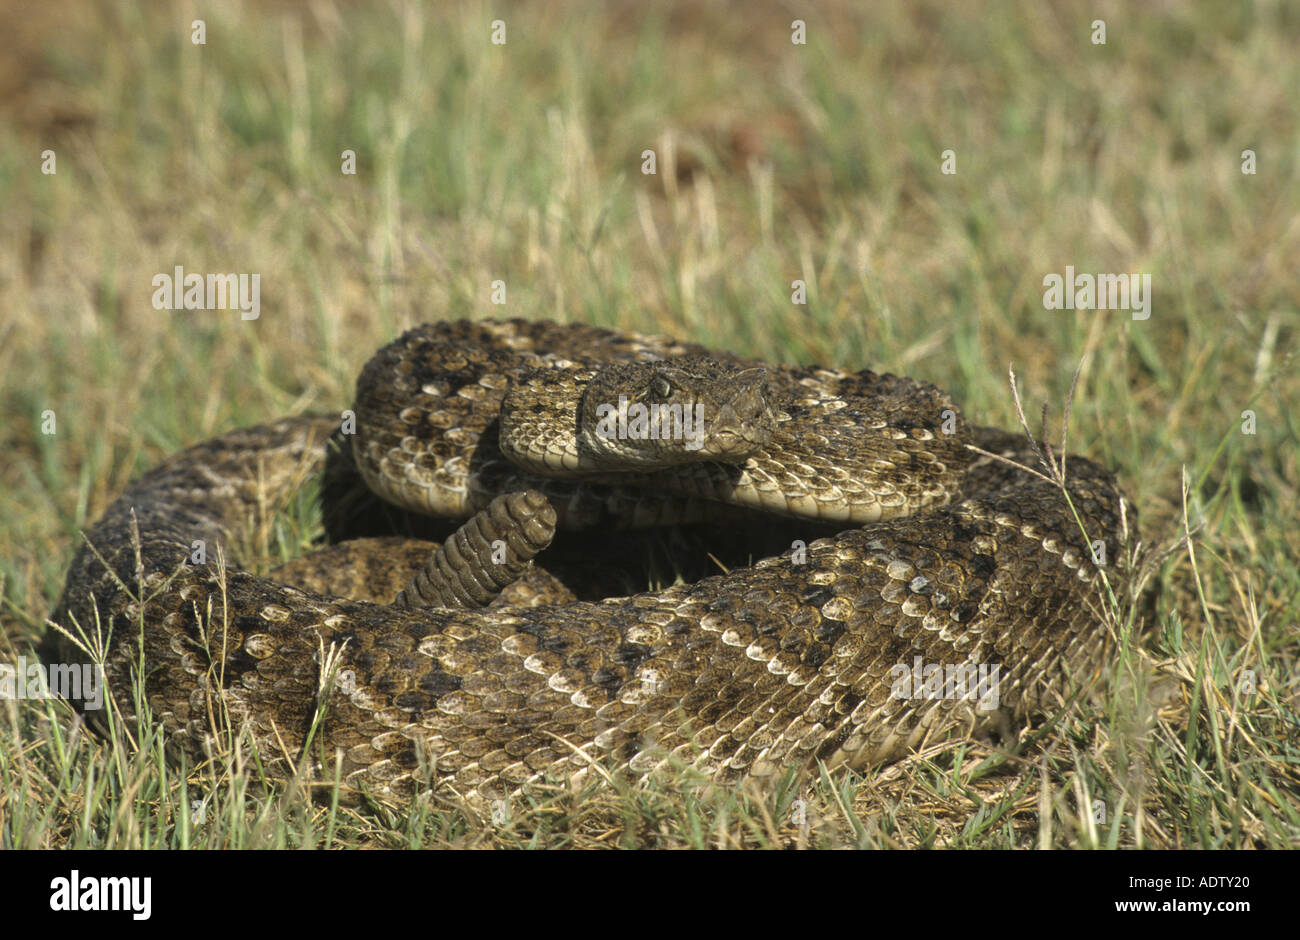 Western Diamond backed Rattlesnake Crotalus atrox Curled up on grass Texas U S A Stock Photo